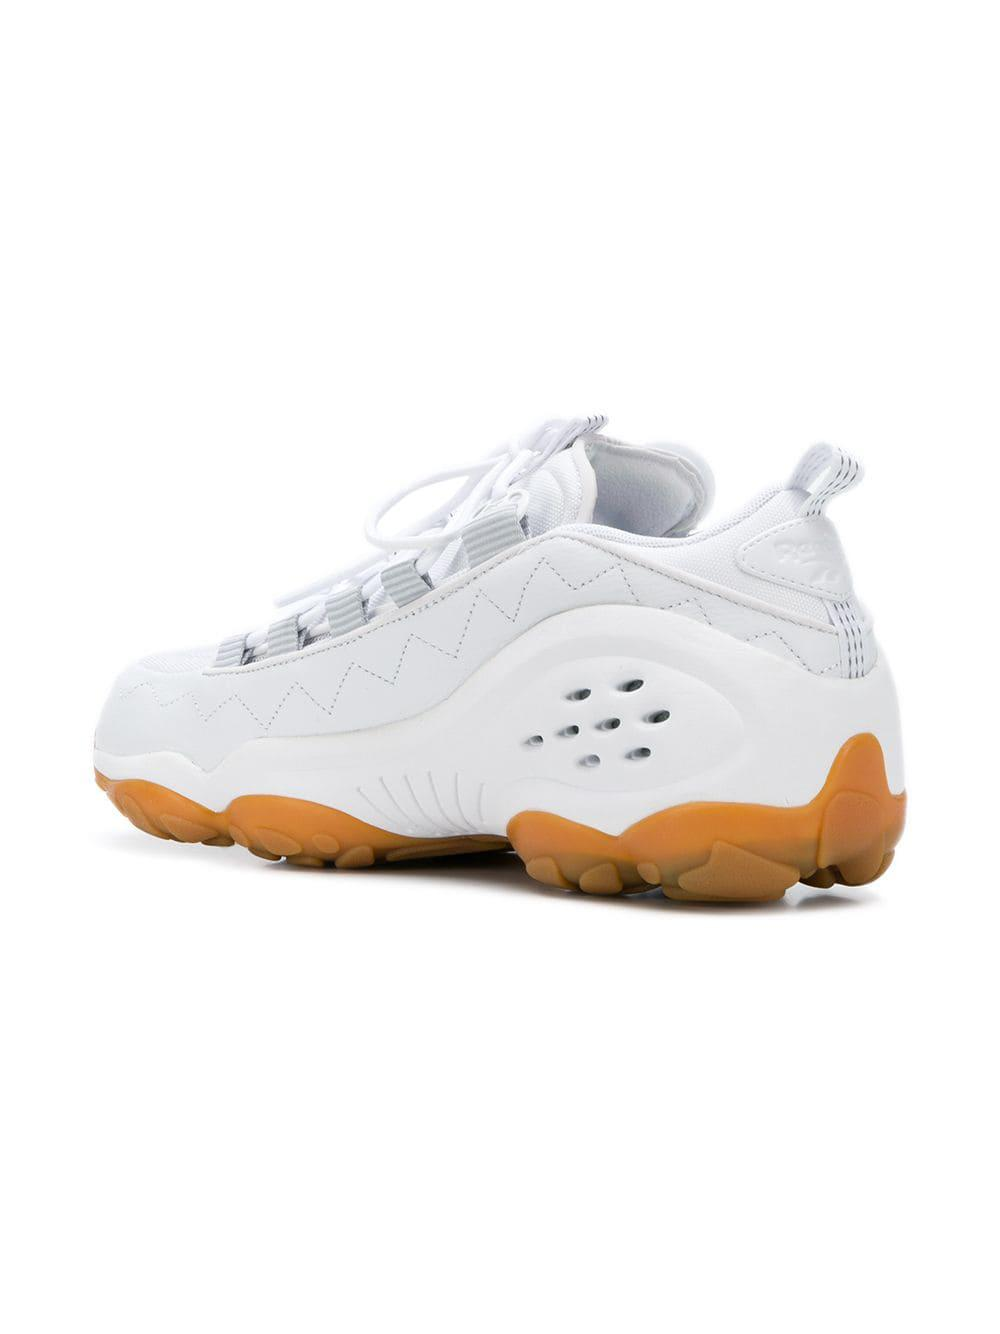 e50272b20 Reebok Dmx Run 10 Infinite Sneakers in White for Men - Lyst